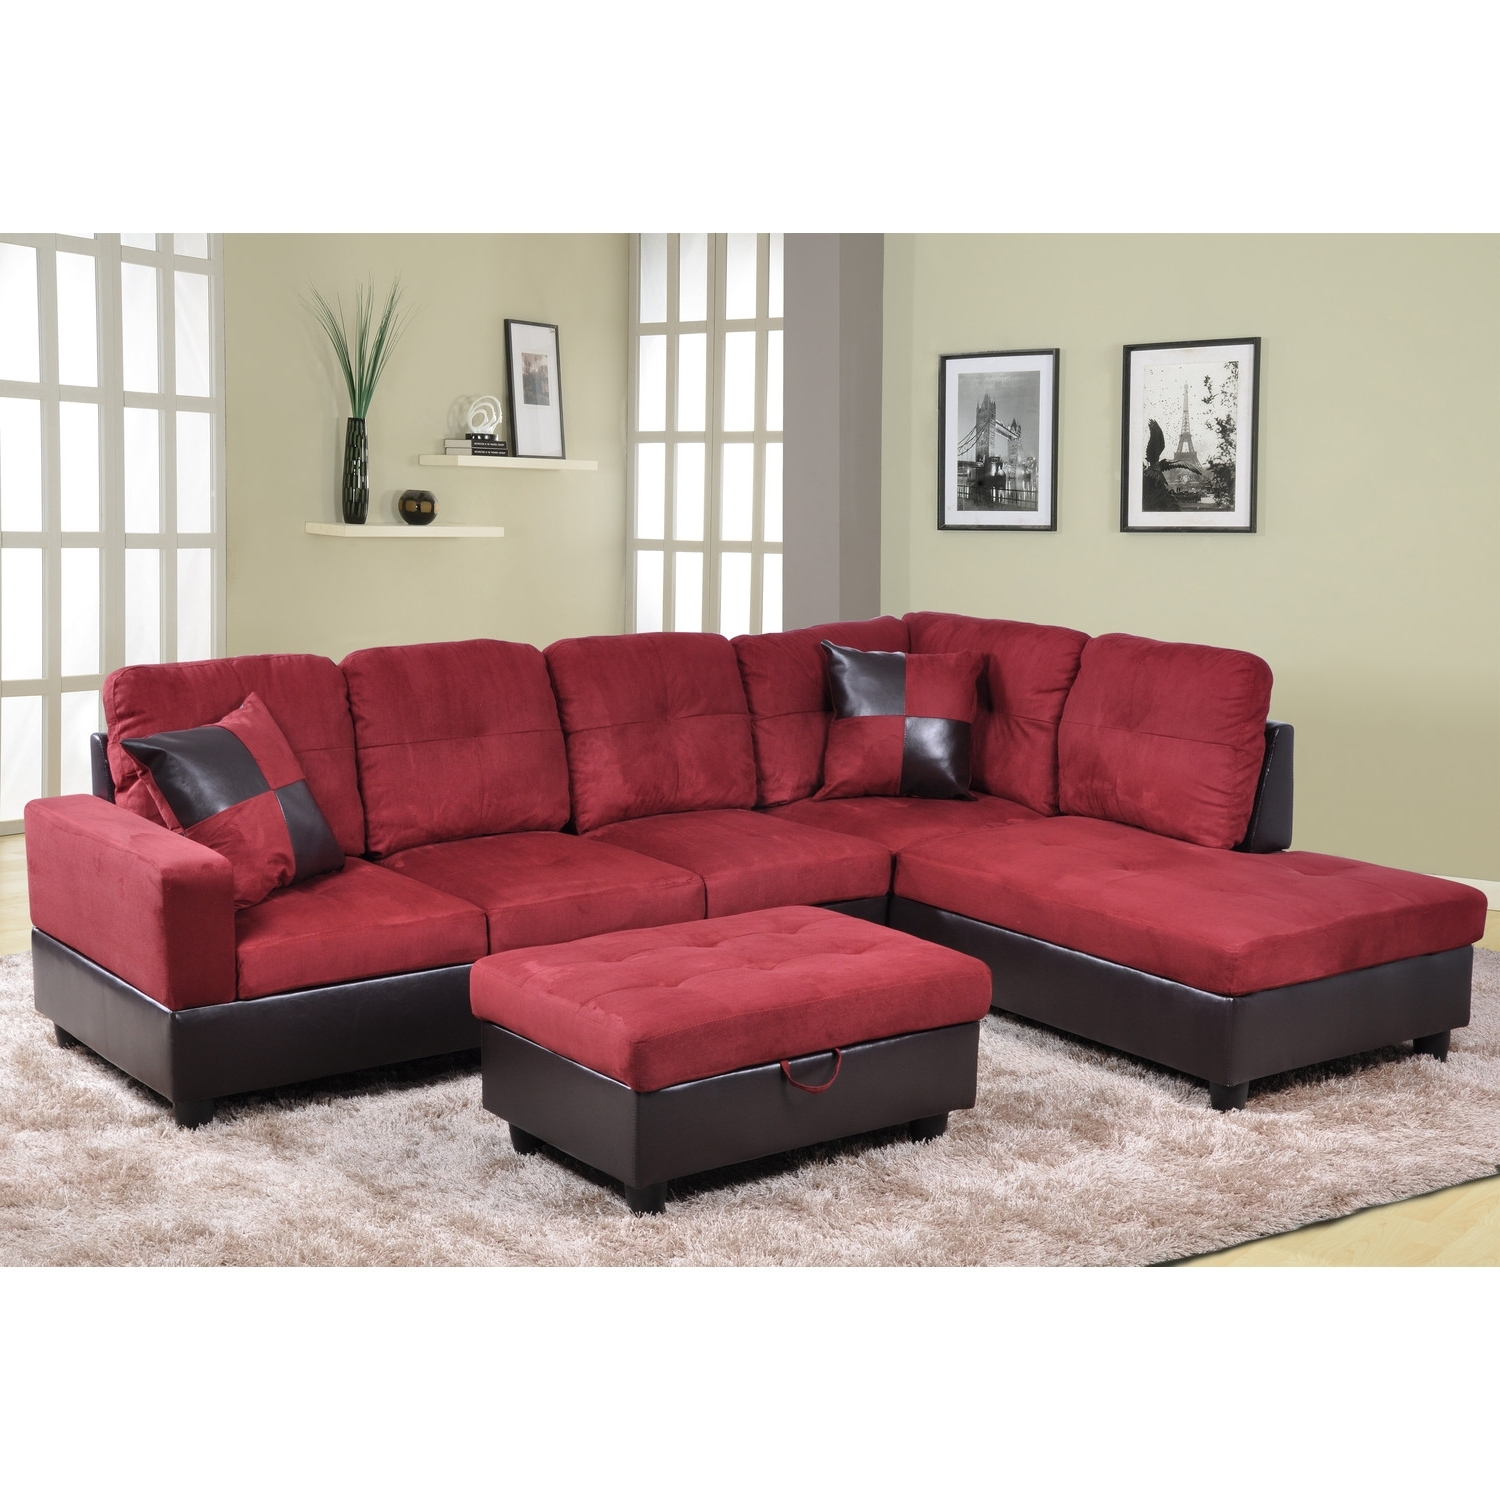 Favorite Nice Cheap Sofas For Sale About Furniture Sophisticated Designs Of With Sectional Sofas Under (View 12 of 15)